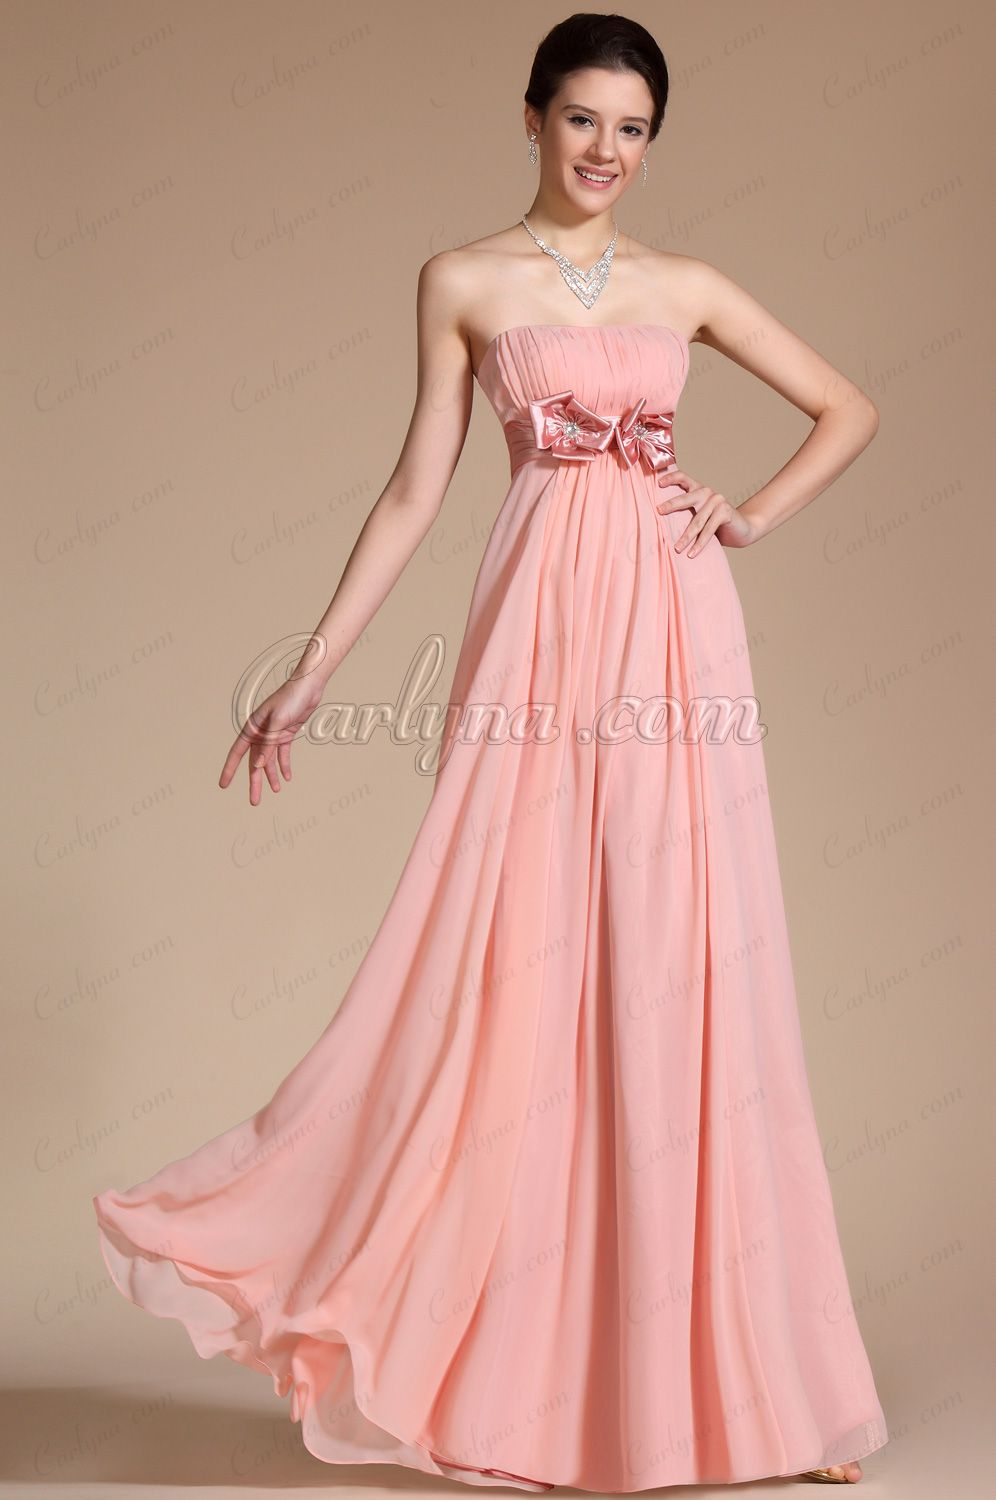 Carlyna 2014 New Simple Elegant Light Pink Strapless Evening Dress ...